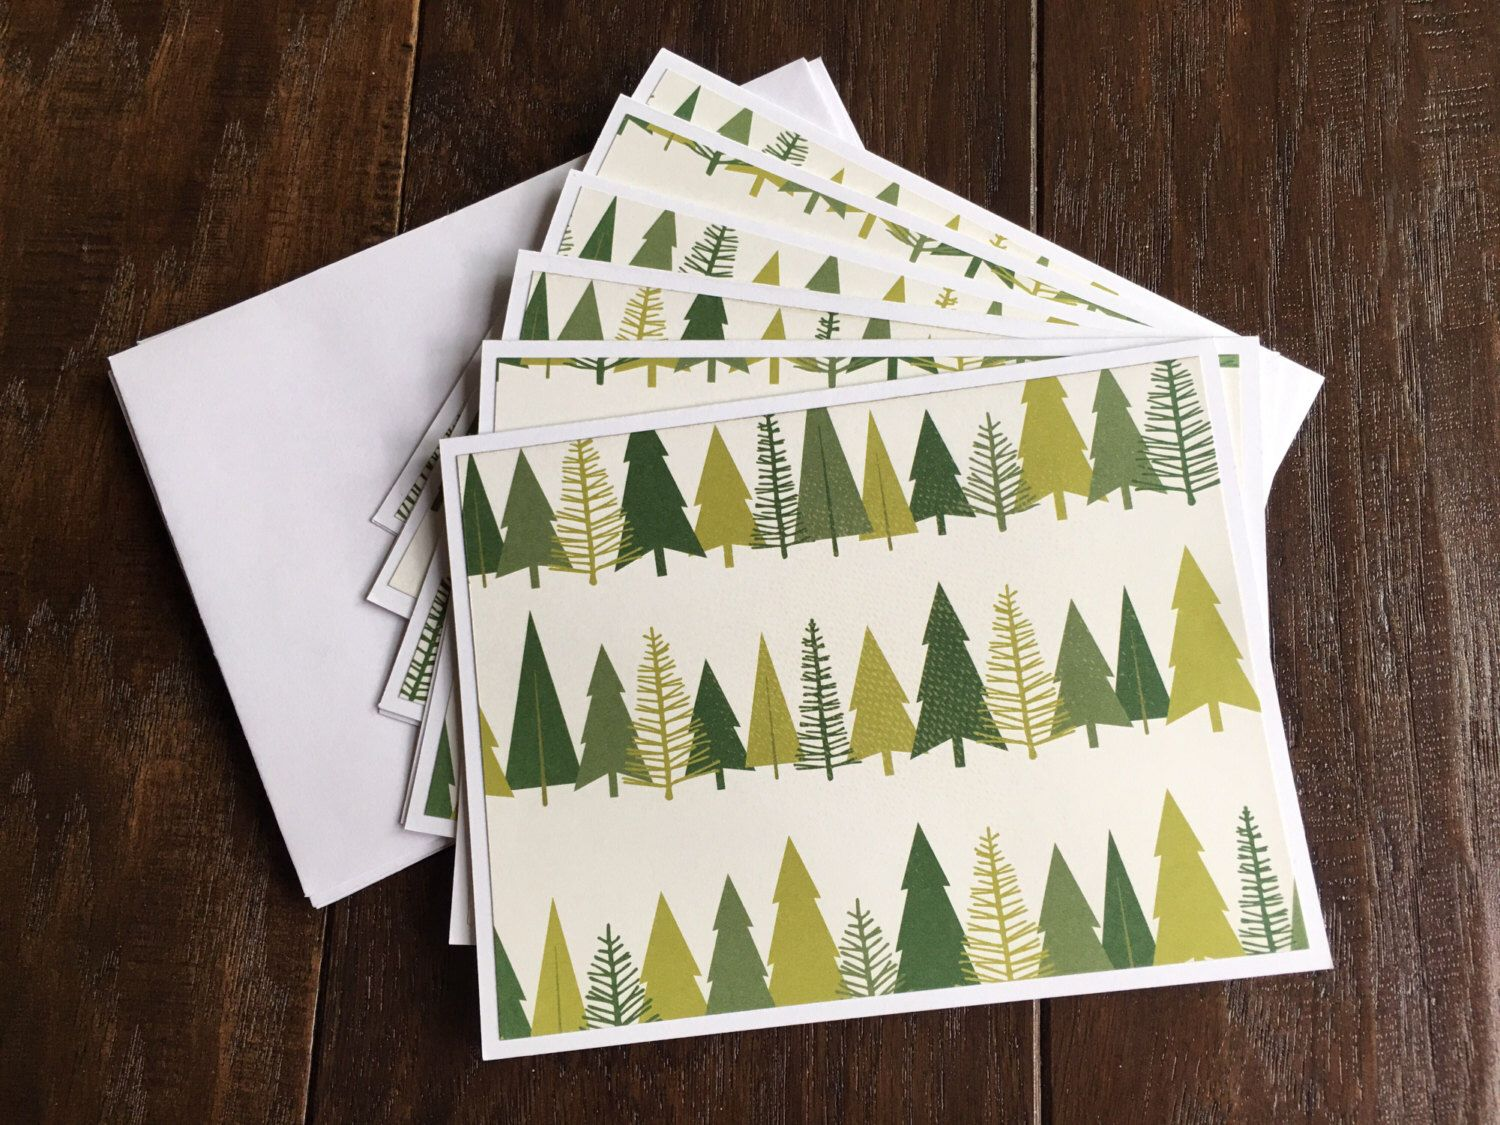 Set of 6 Tree Modern Handmade Note Cards Shades of Green Blank Inside everyday greeting cards with envelopes by thehappymailpaperie on Etsy https://www.etsy.com/listing/477948425/set-of-6-tree-modern-handmade-note-cards